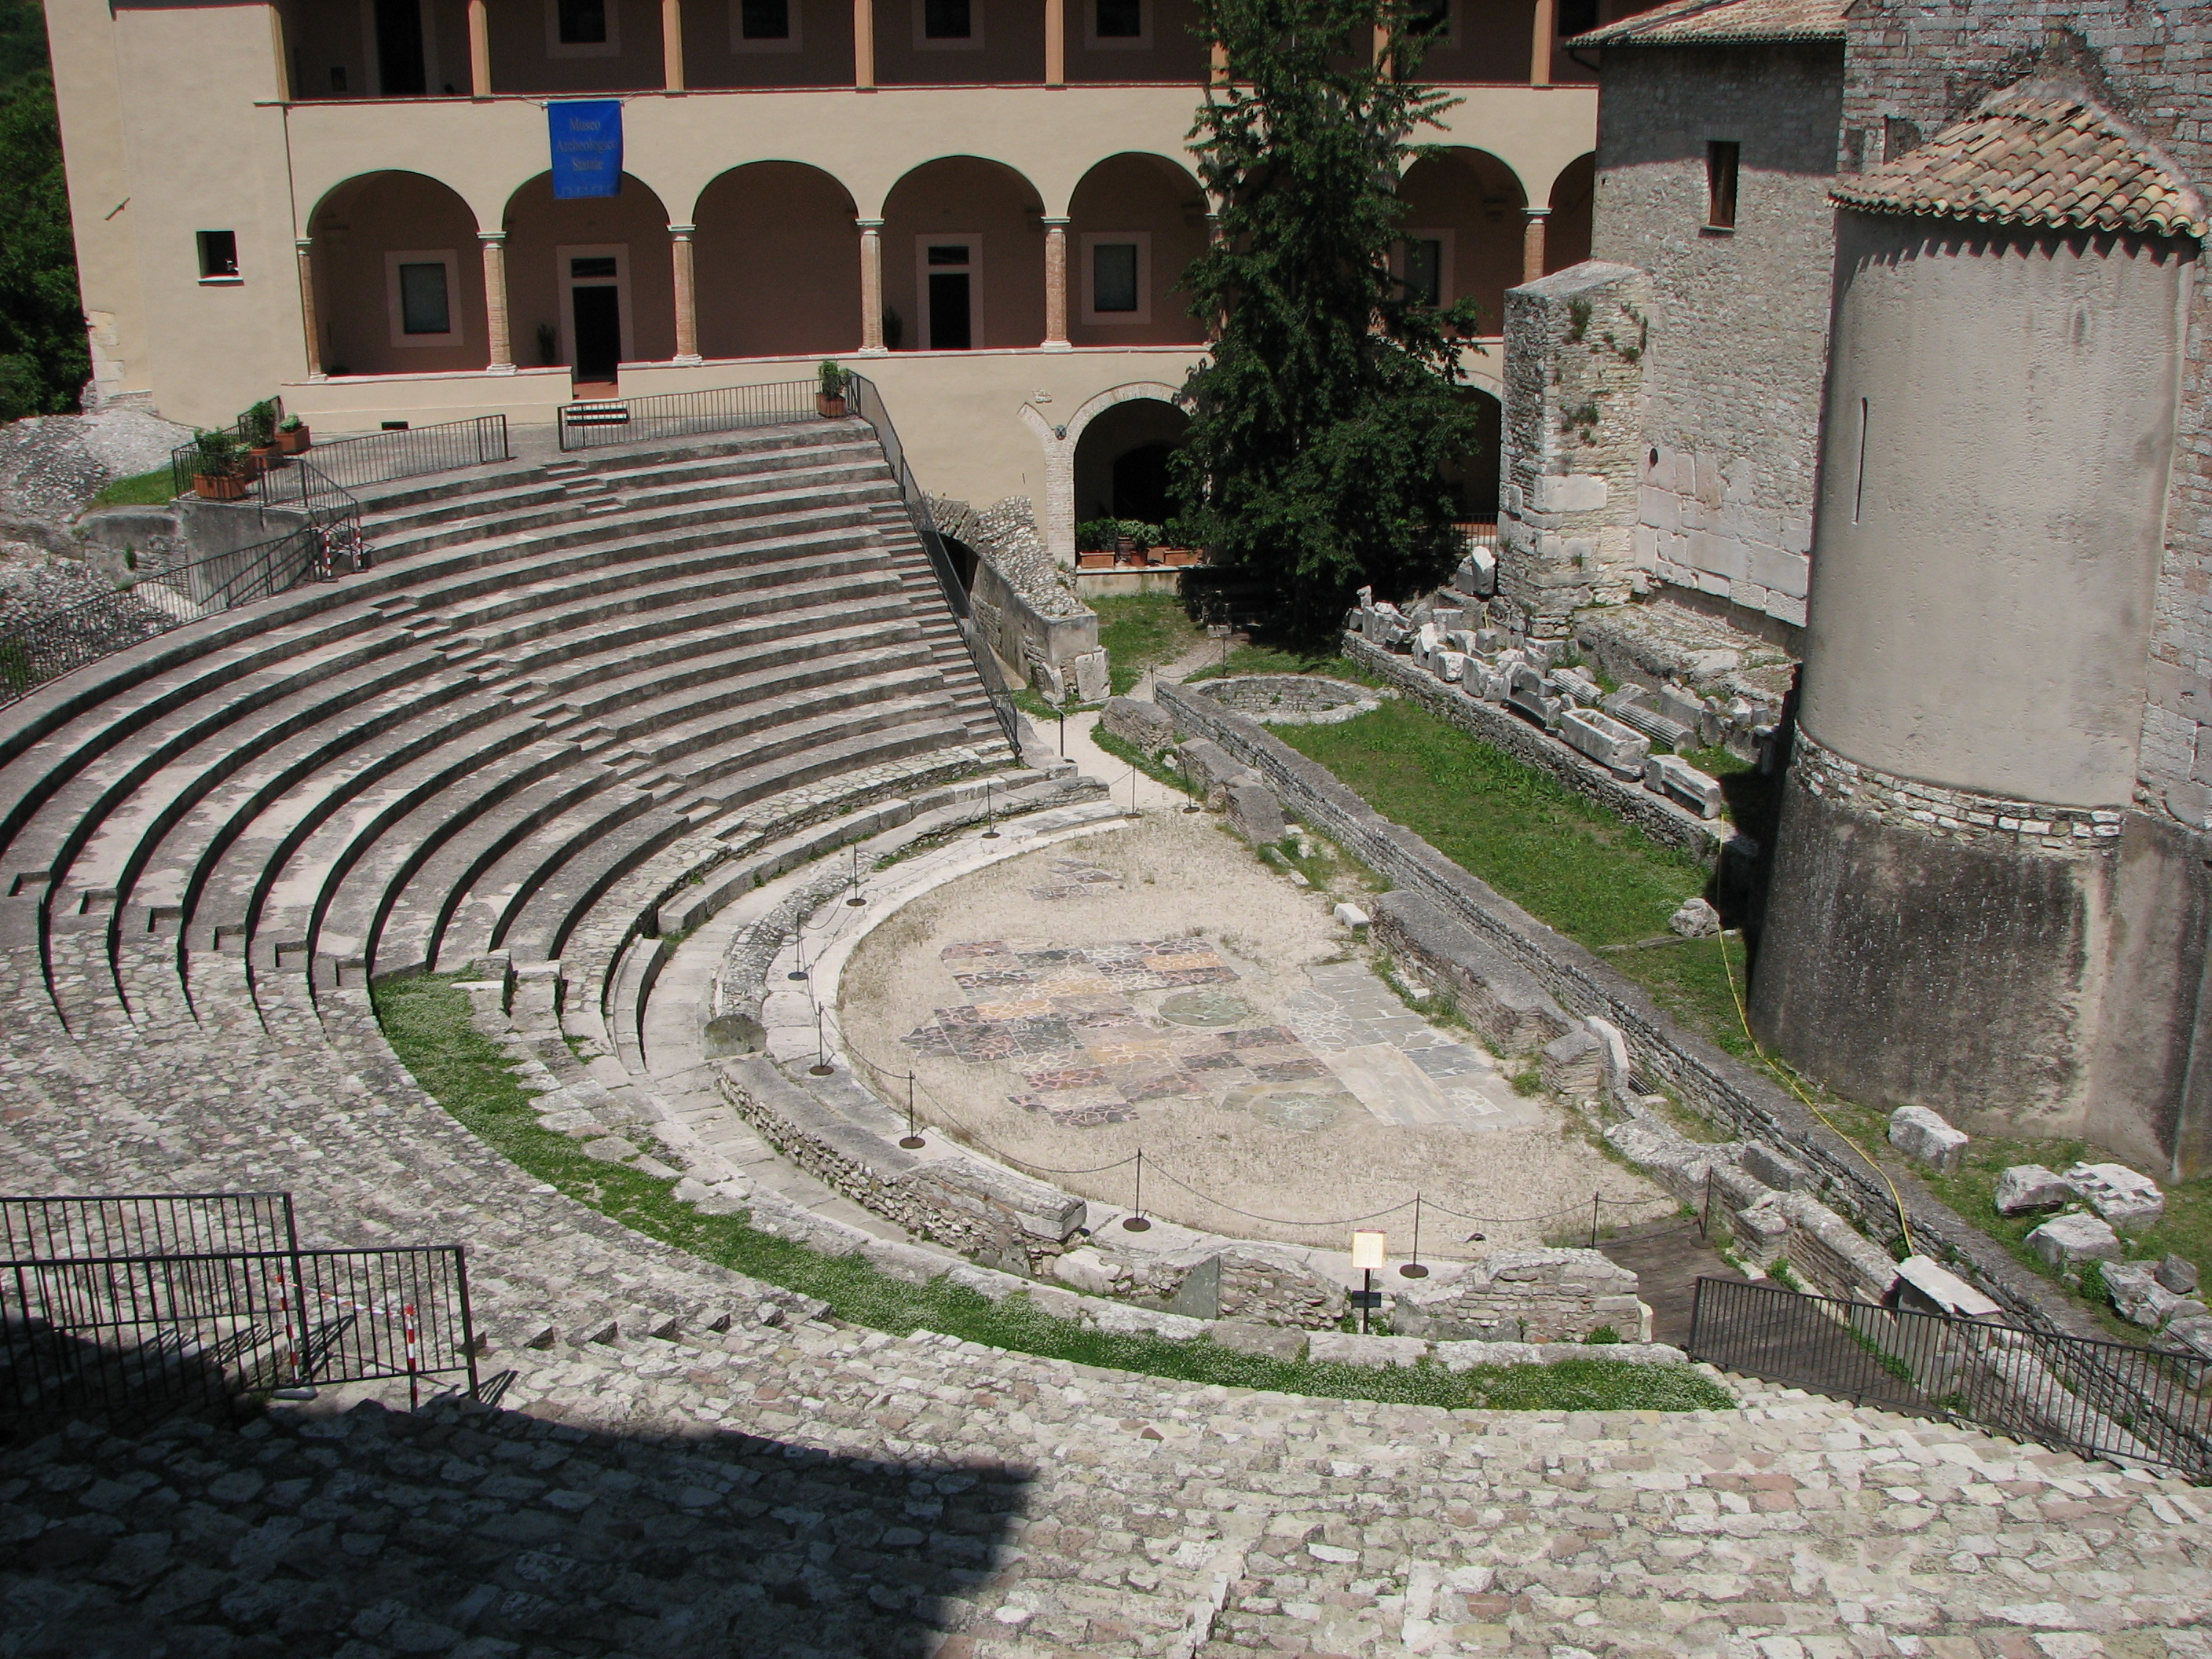 Ancient Roman theatre (Spoleto) by Odoacre (Own work) [Public domain], via Wikimedia Commons